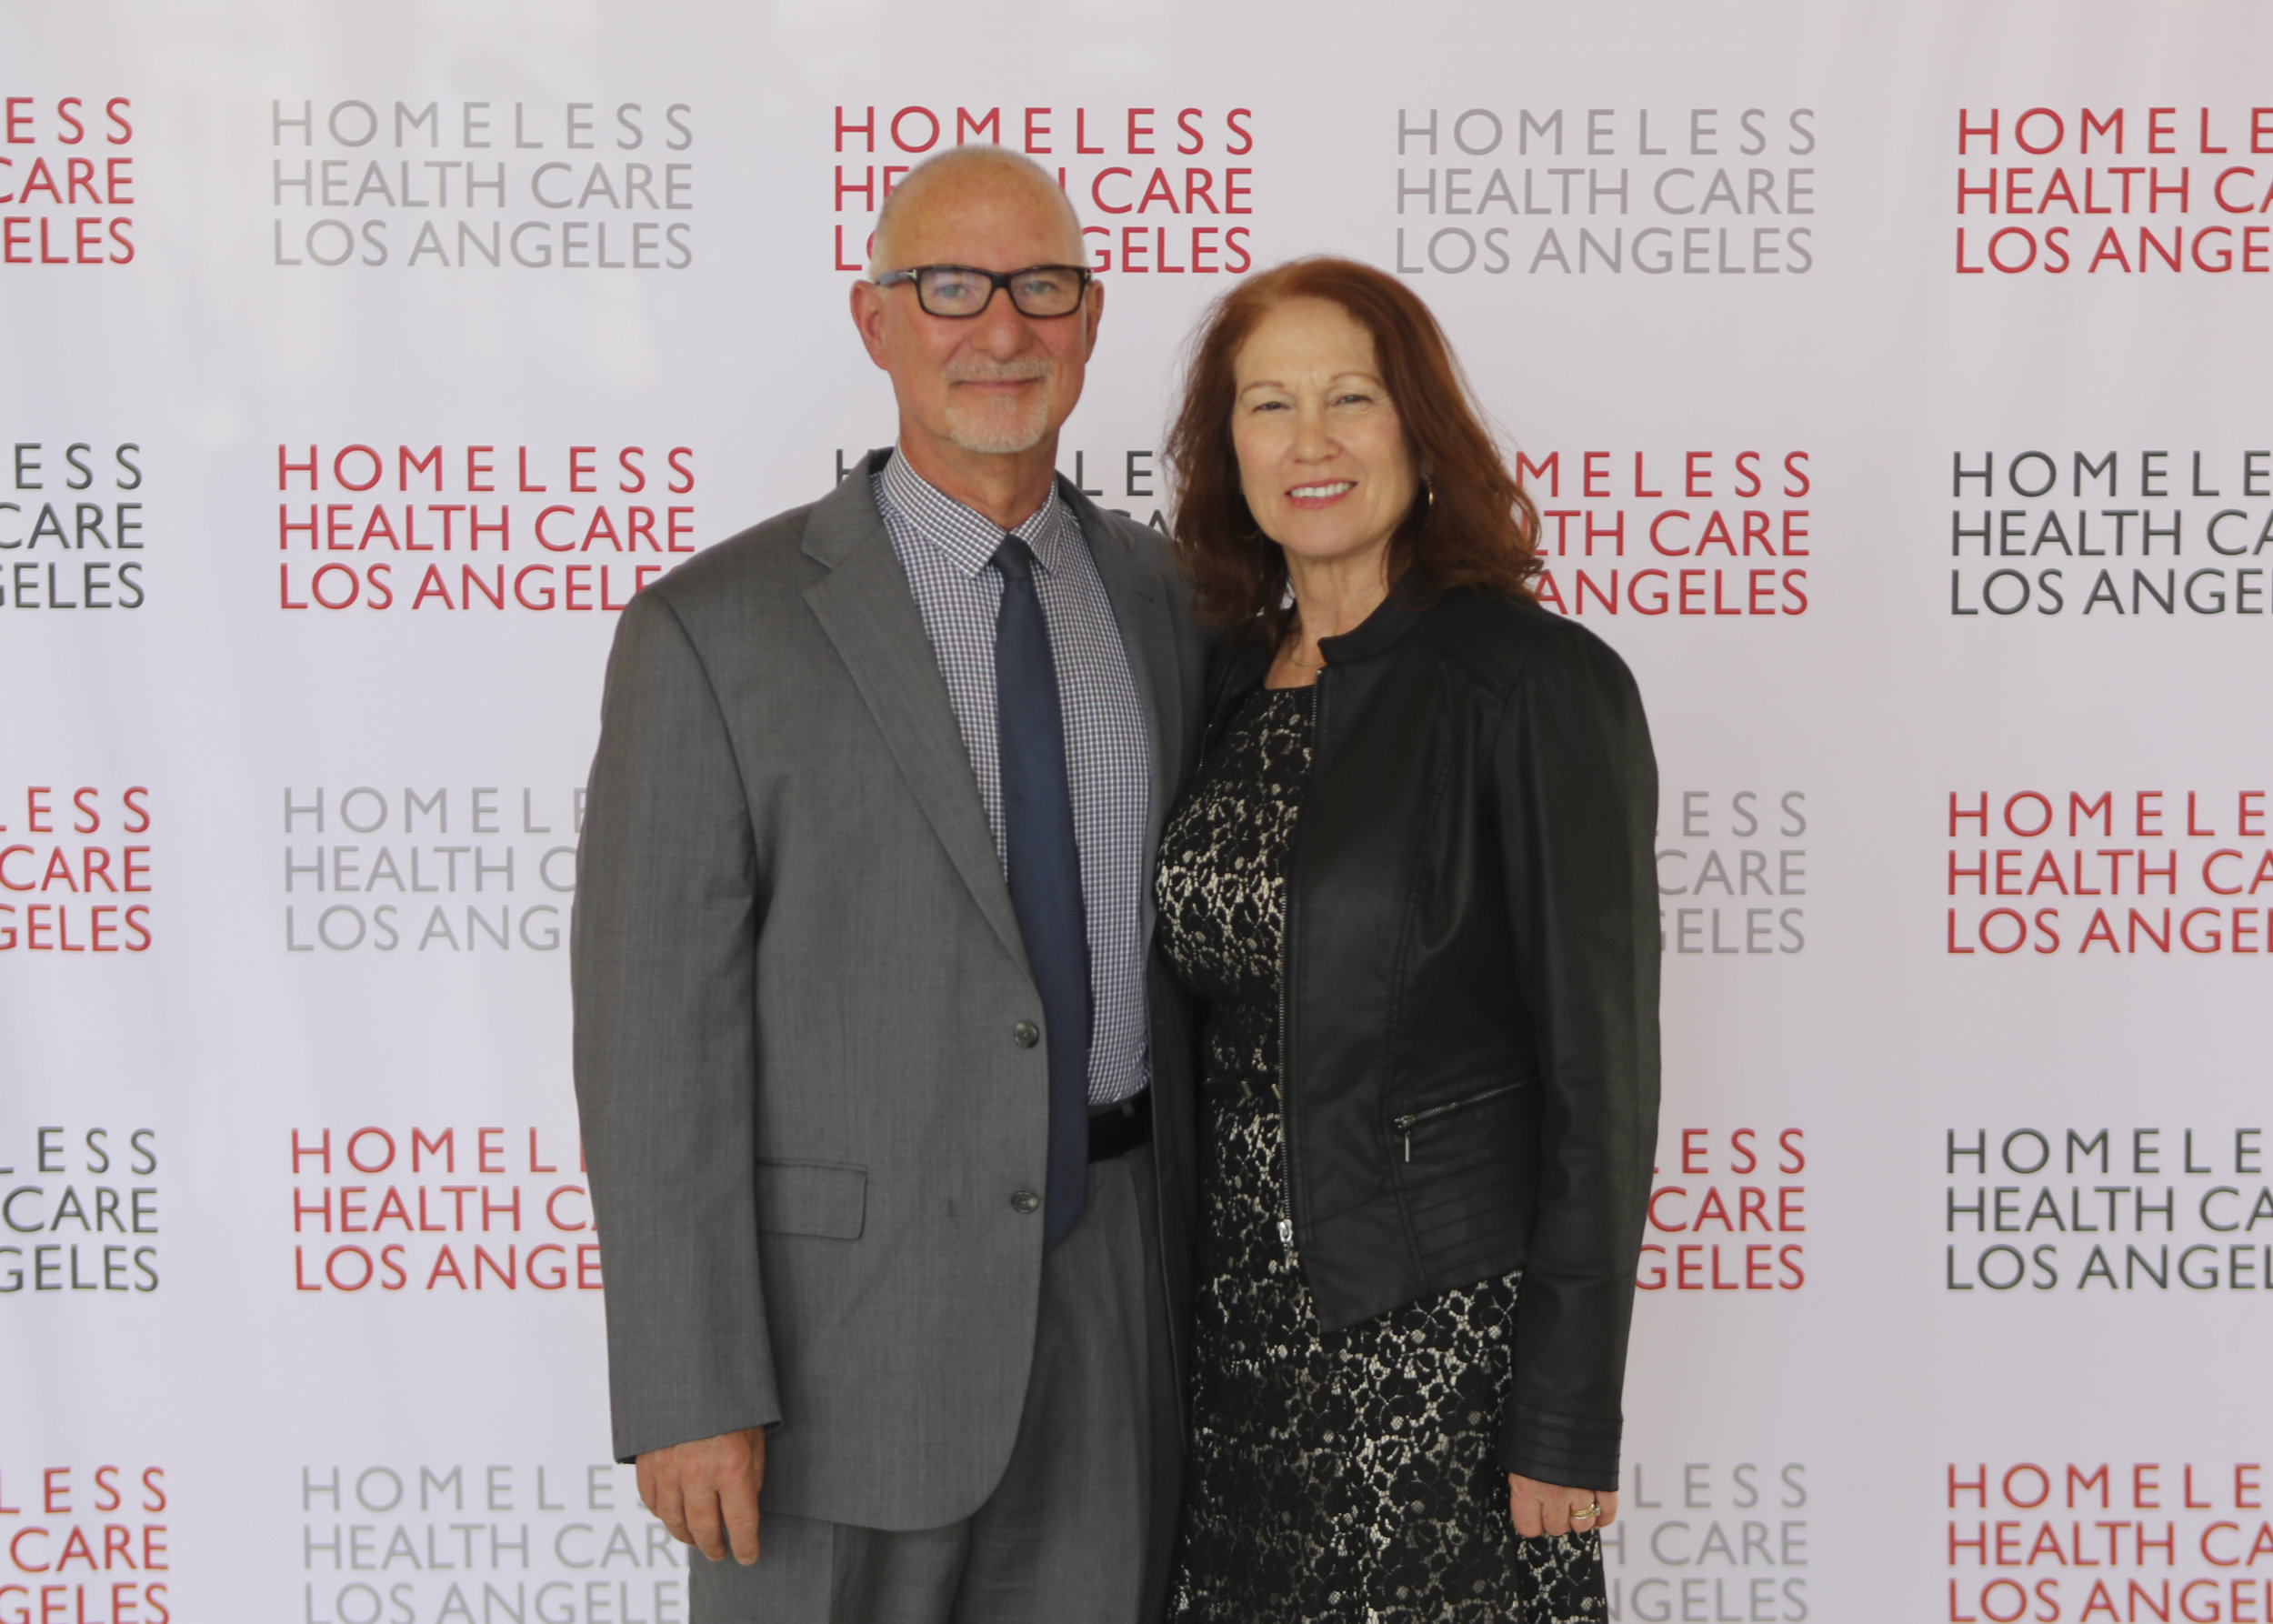 Homeless Healthcare Plato de Oro 2019_27.JPG